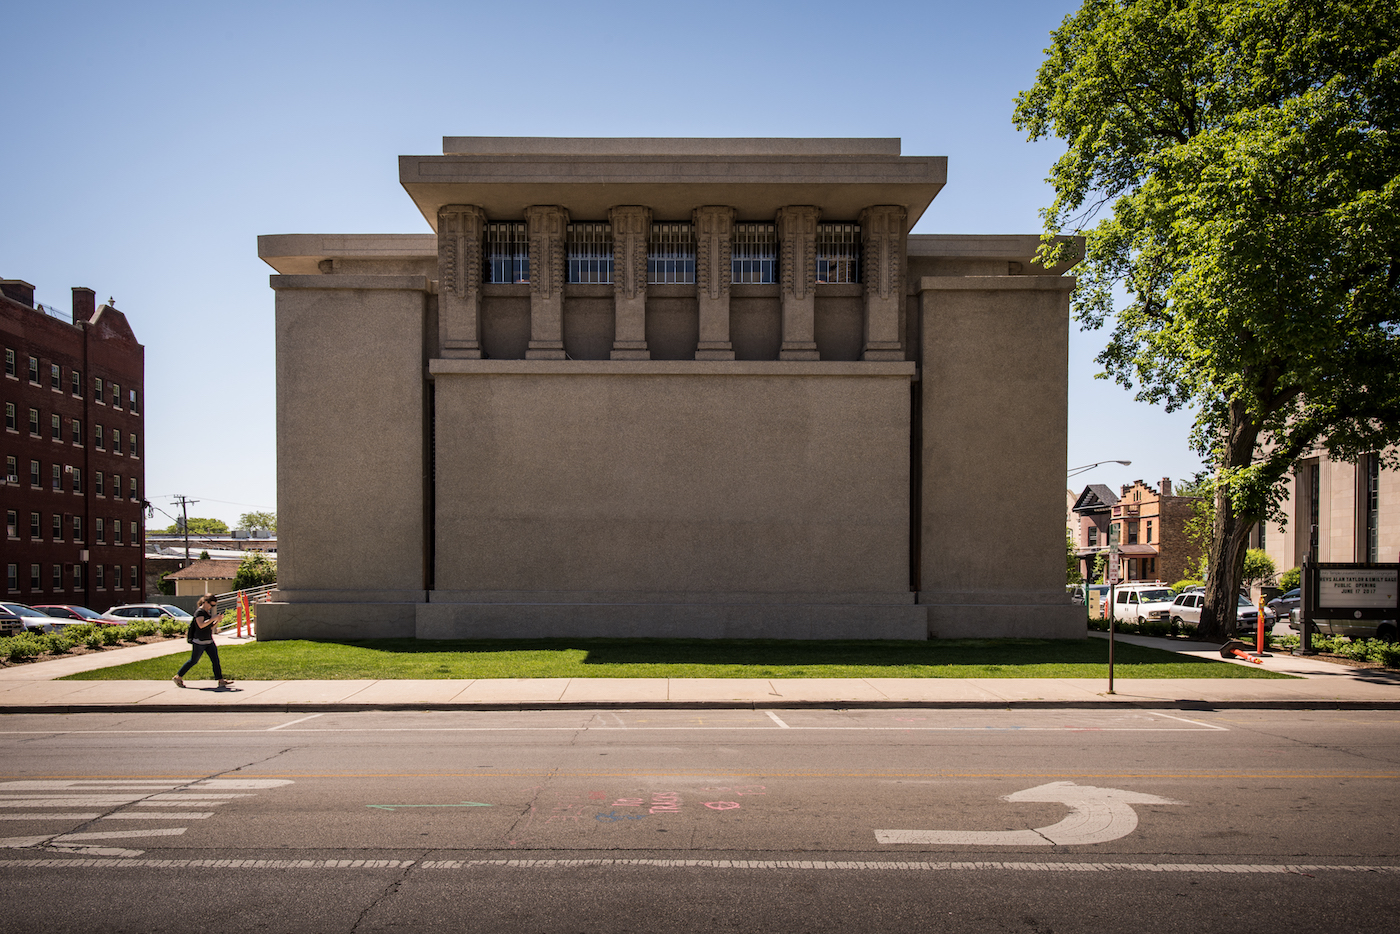 restoration done wright a look inside unity temple